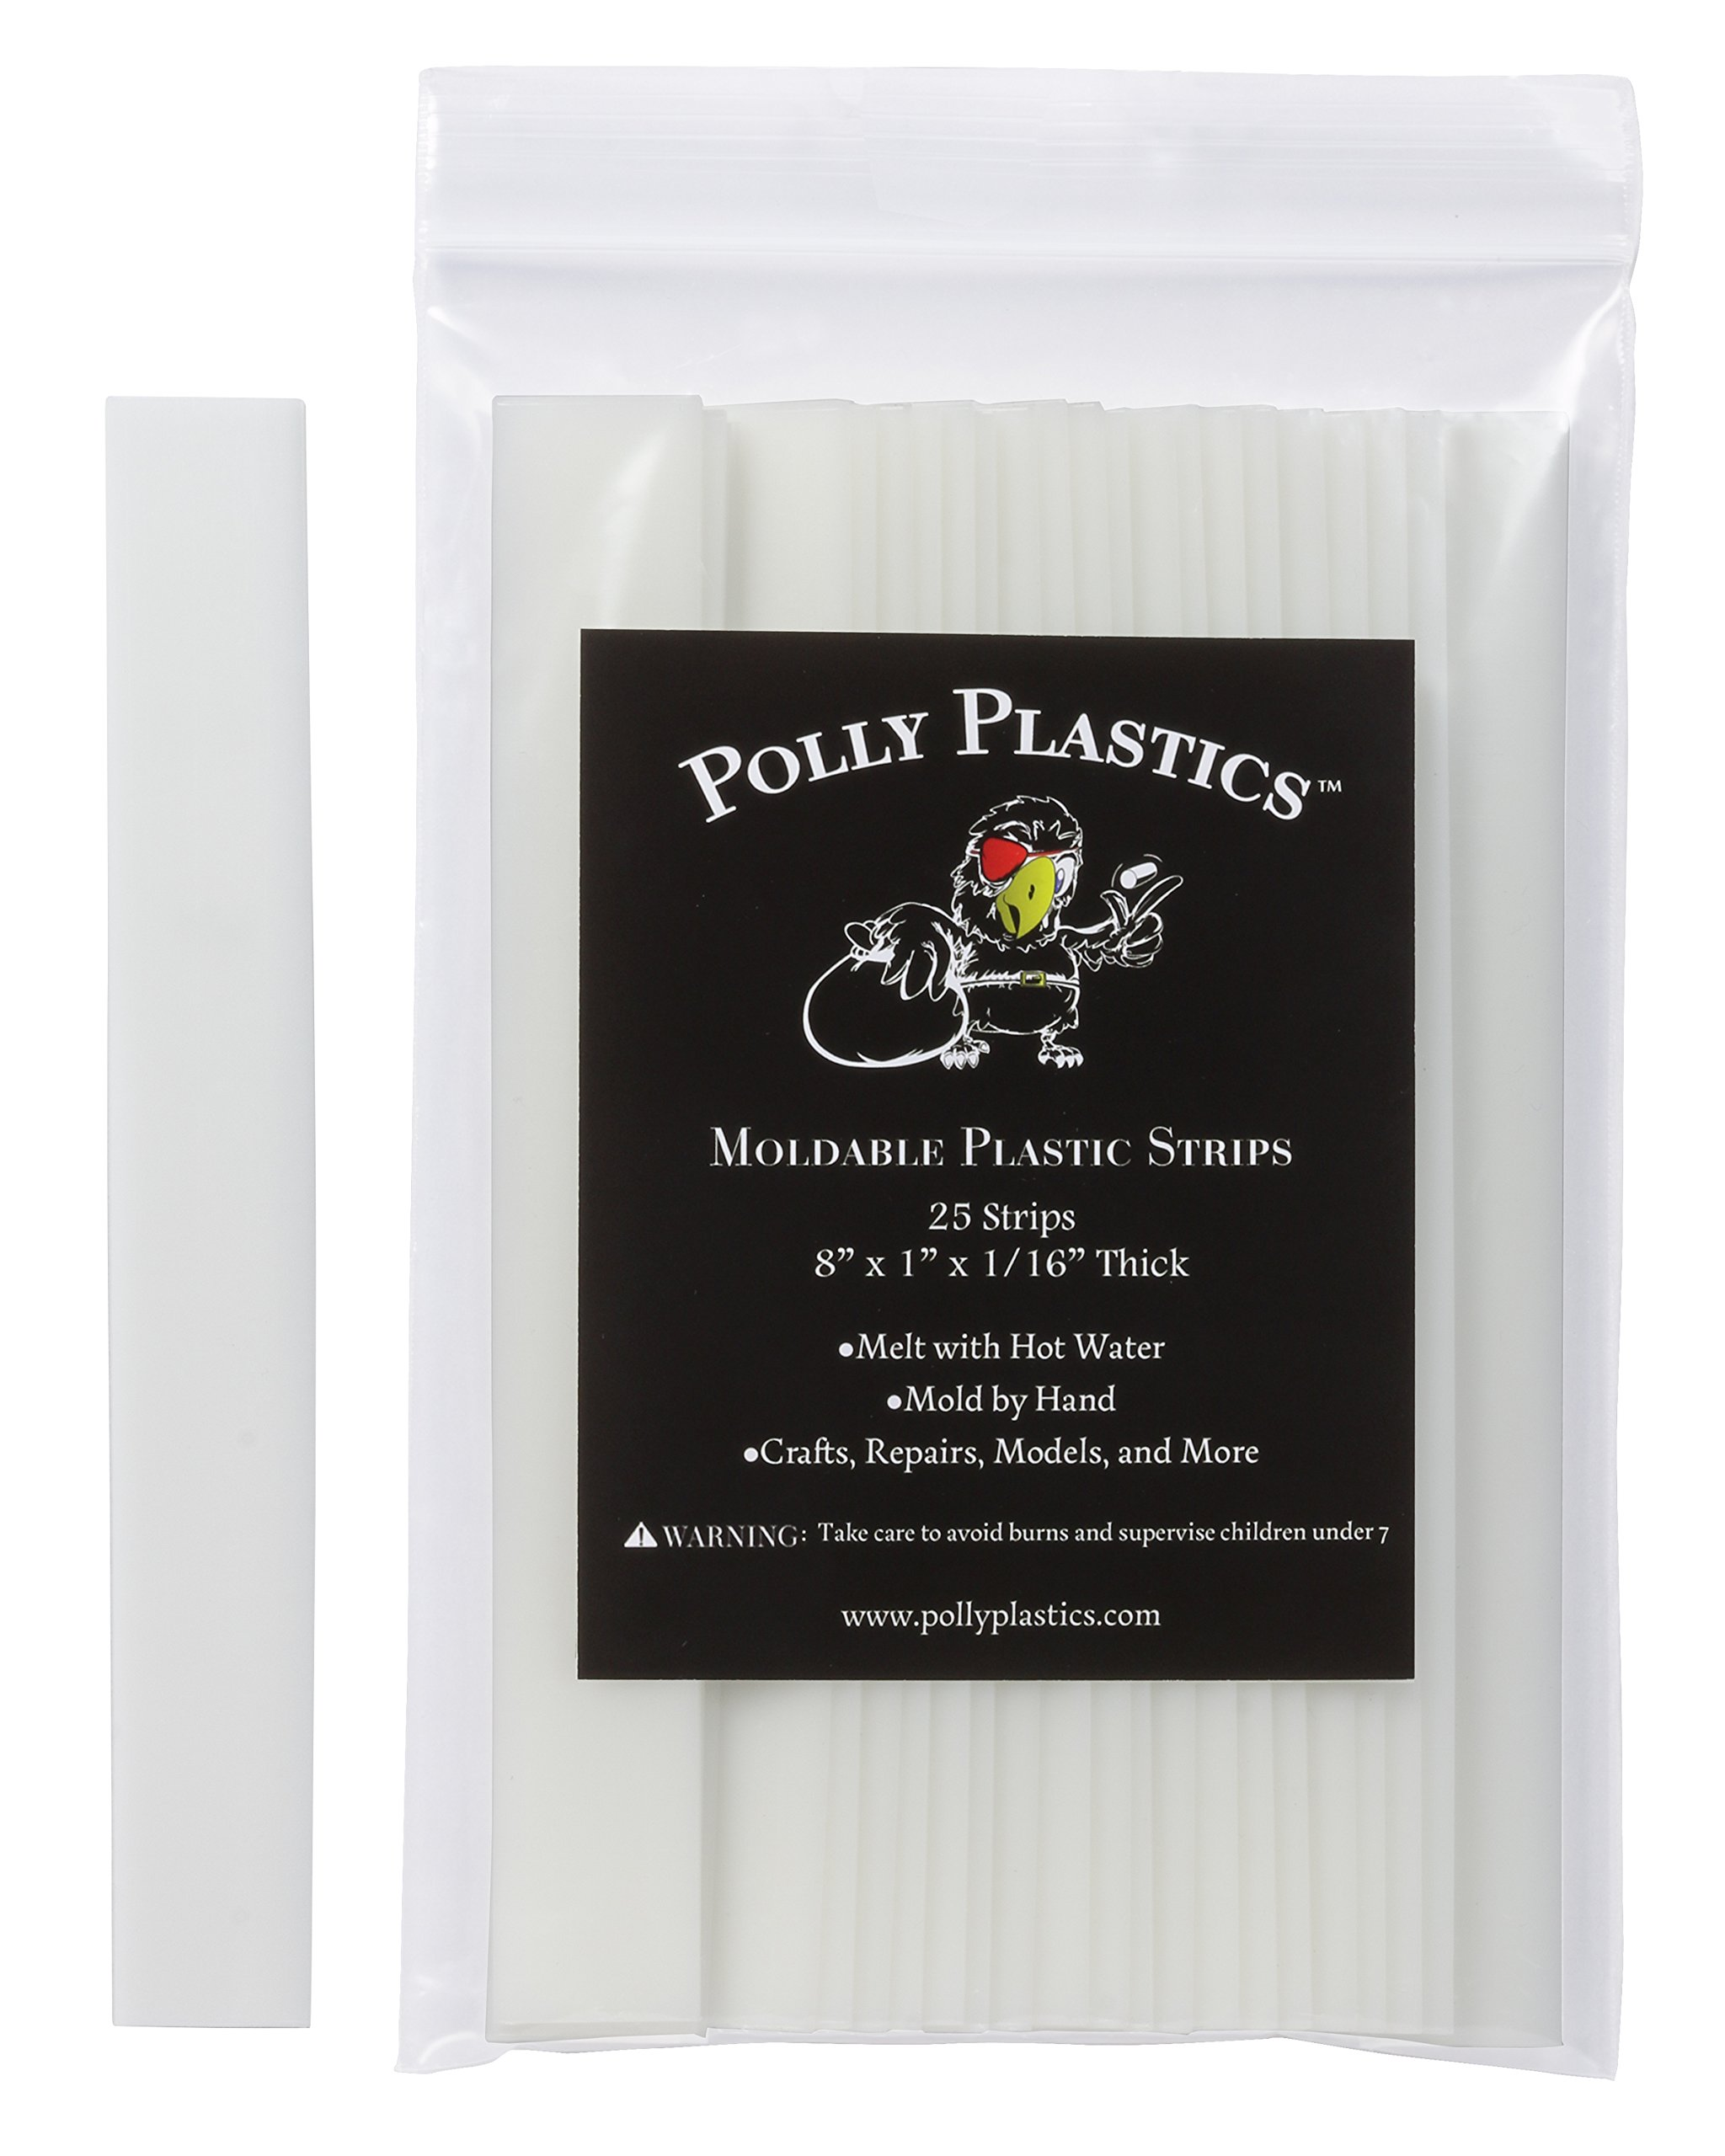 Polly Plastics Heat Moldable Plastic Strips - 25 Strips, 1 x 8 x 1/16 by Polly Plastics